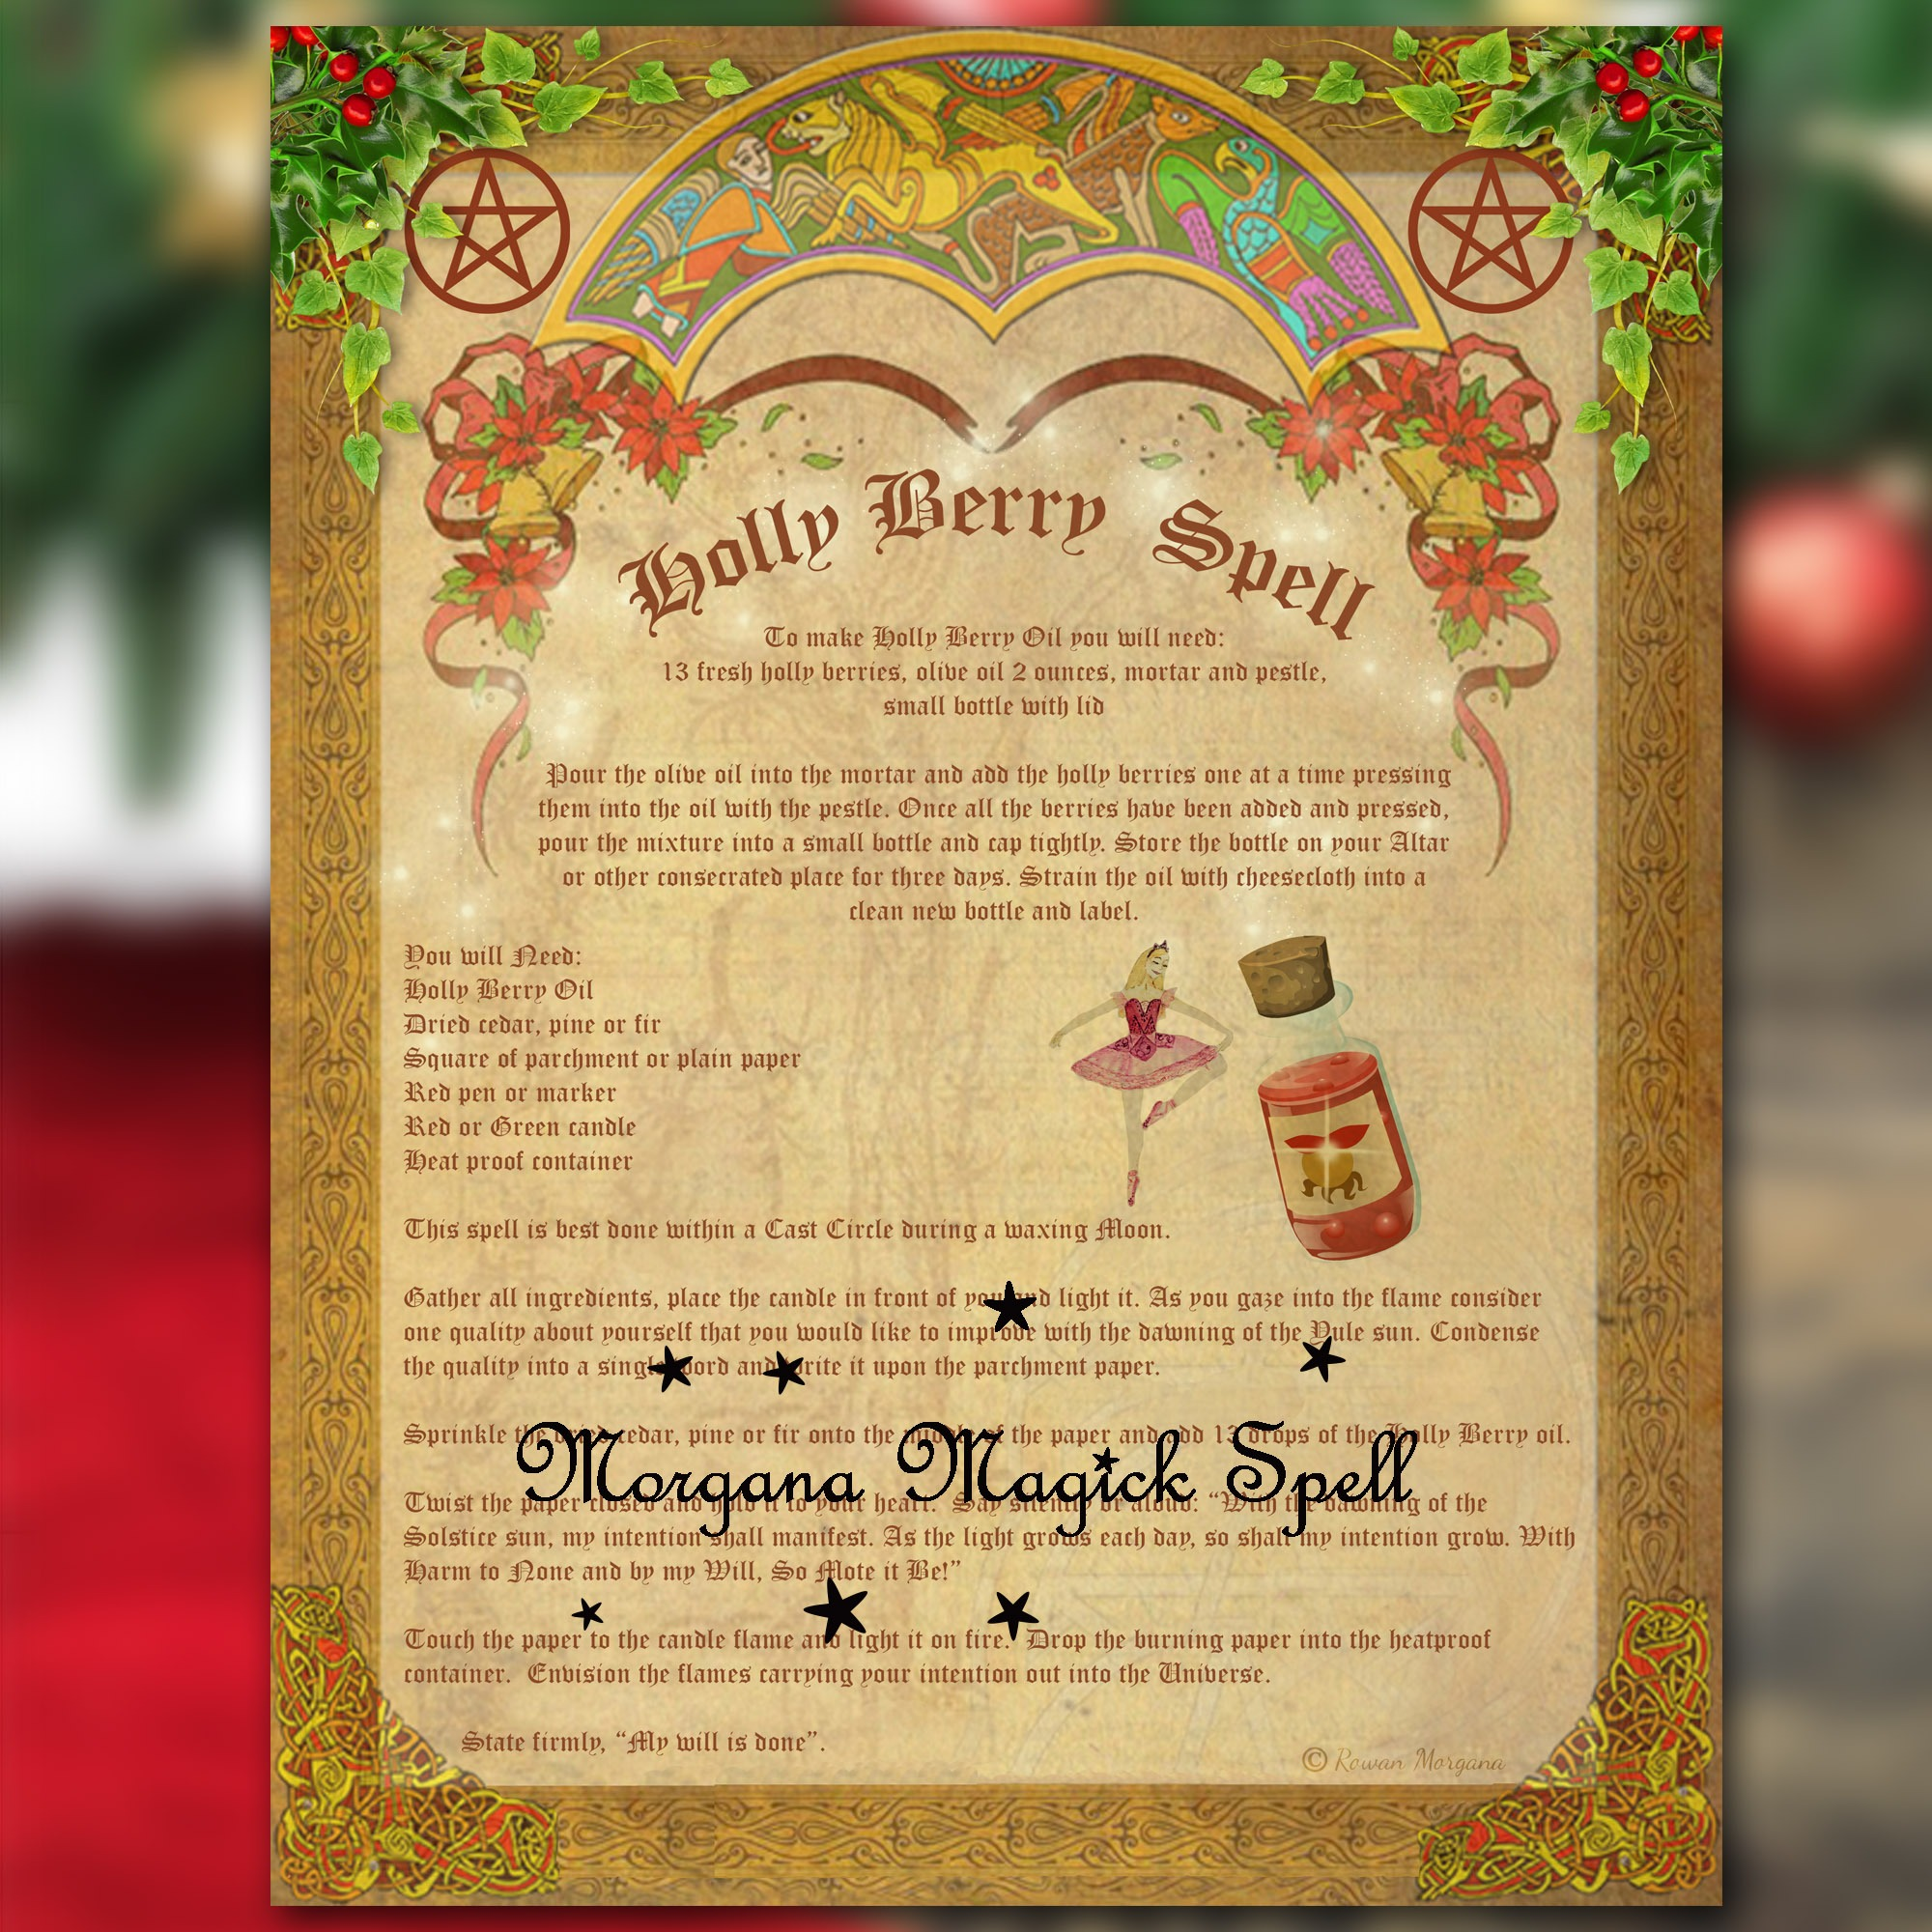 YULE HOLLY BERRY SPELL